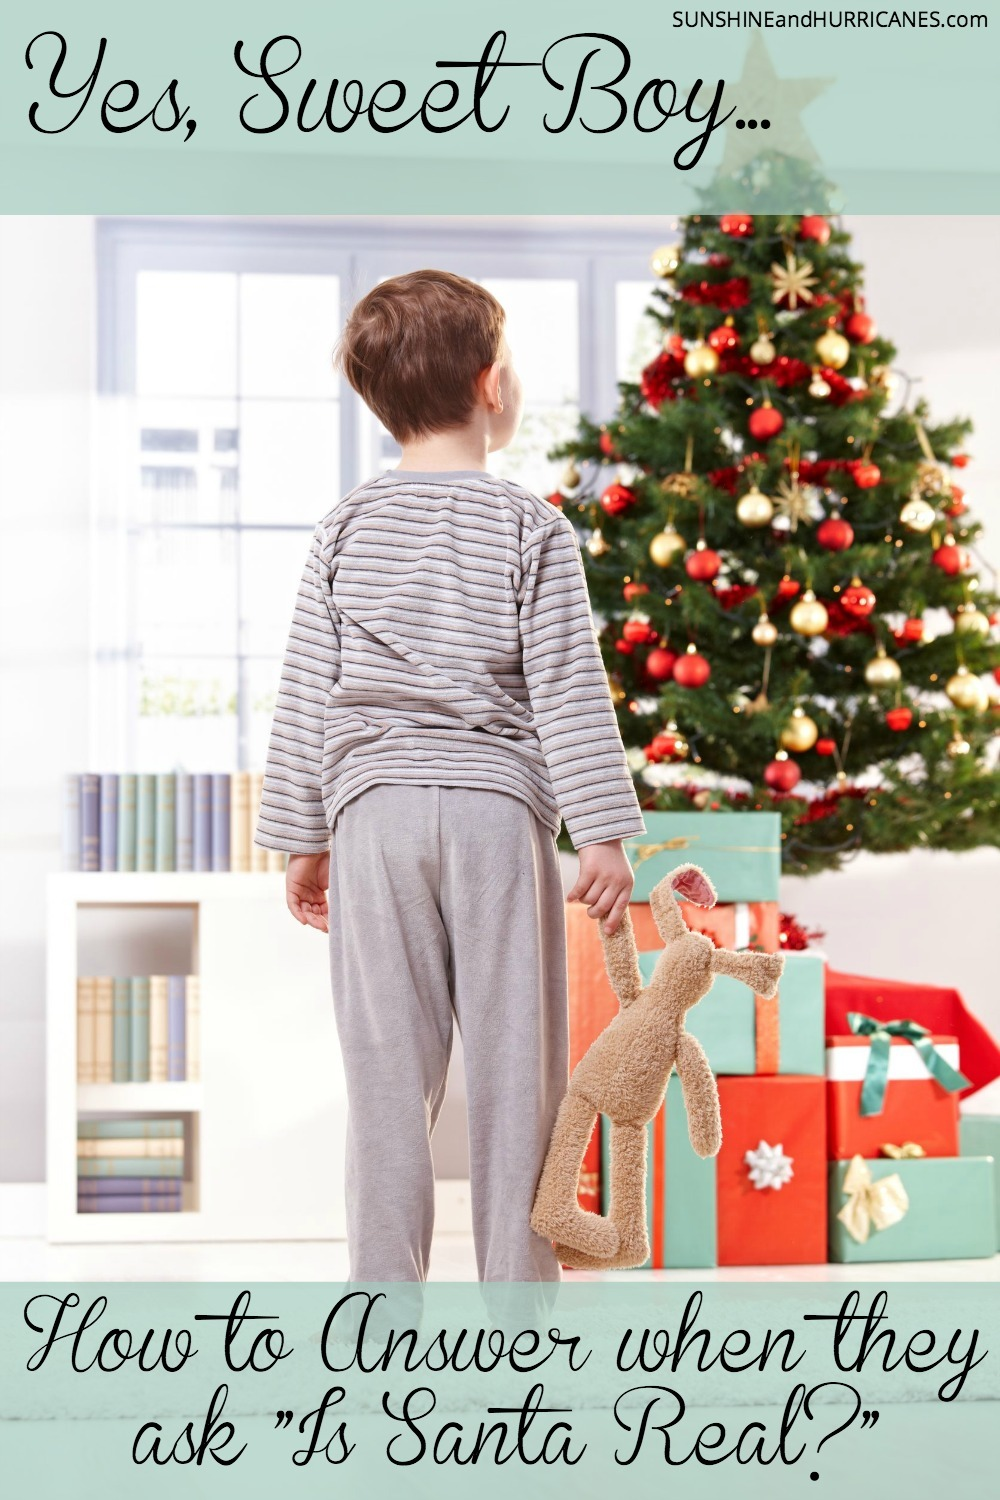 "Has your child started asking, ""Is Santa Real?"" Just because they are growing up, doesn't mean the magic has to end. Here's how I handled it when my son first started asking about Santa. Yes, Sweet Boy...How to Answer When They Ask ""Is Santa Real?"""